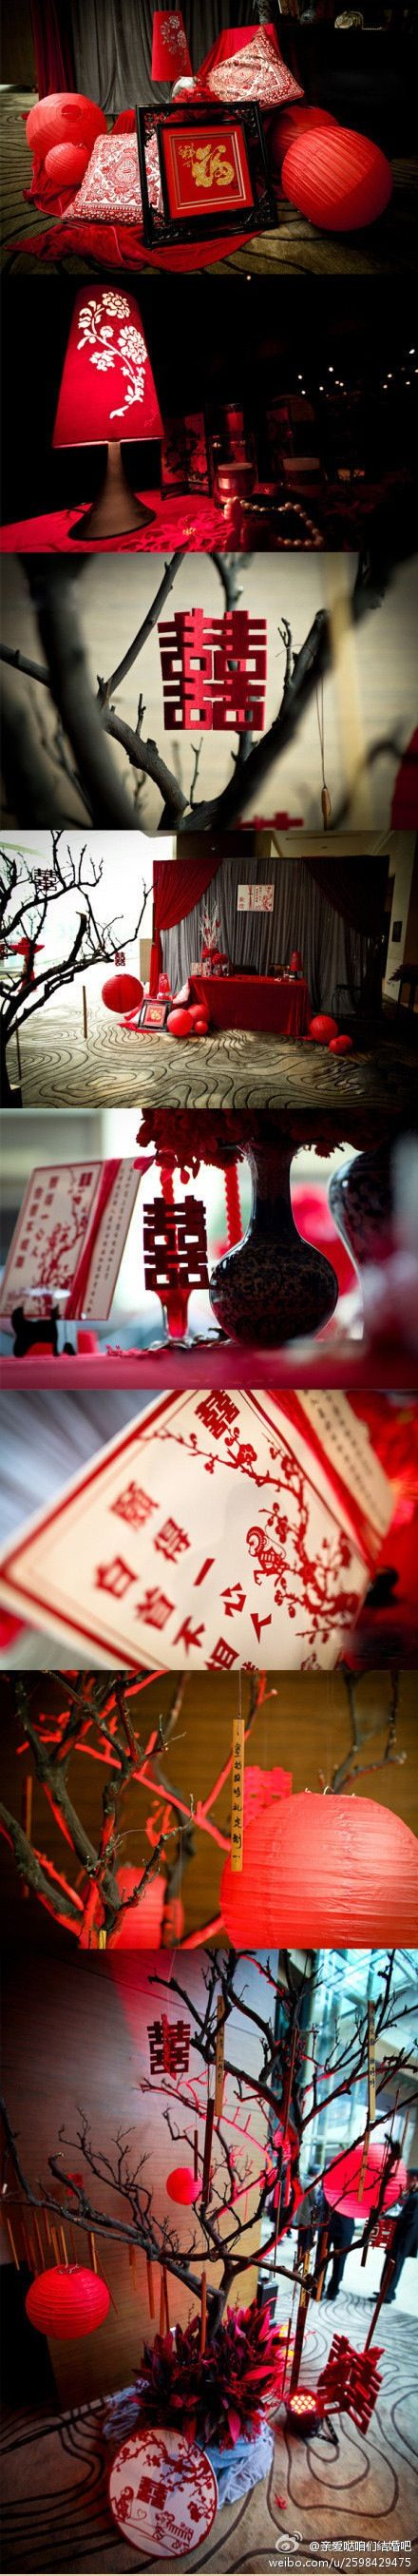 traditional Chinese wedding